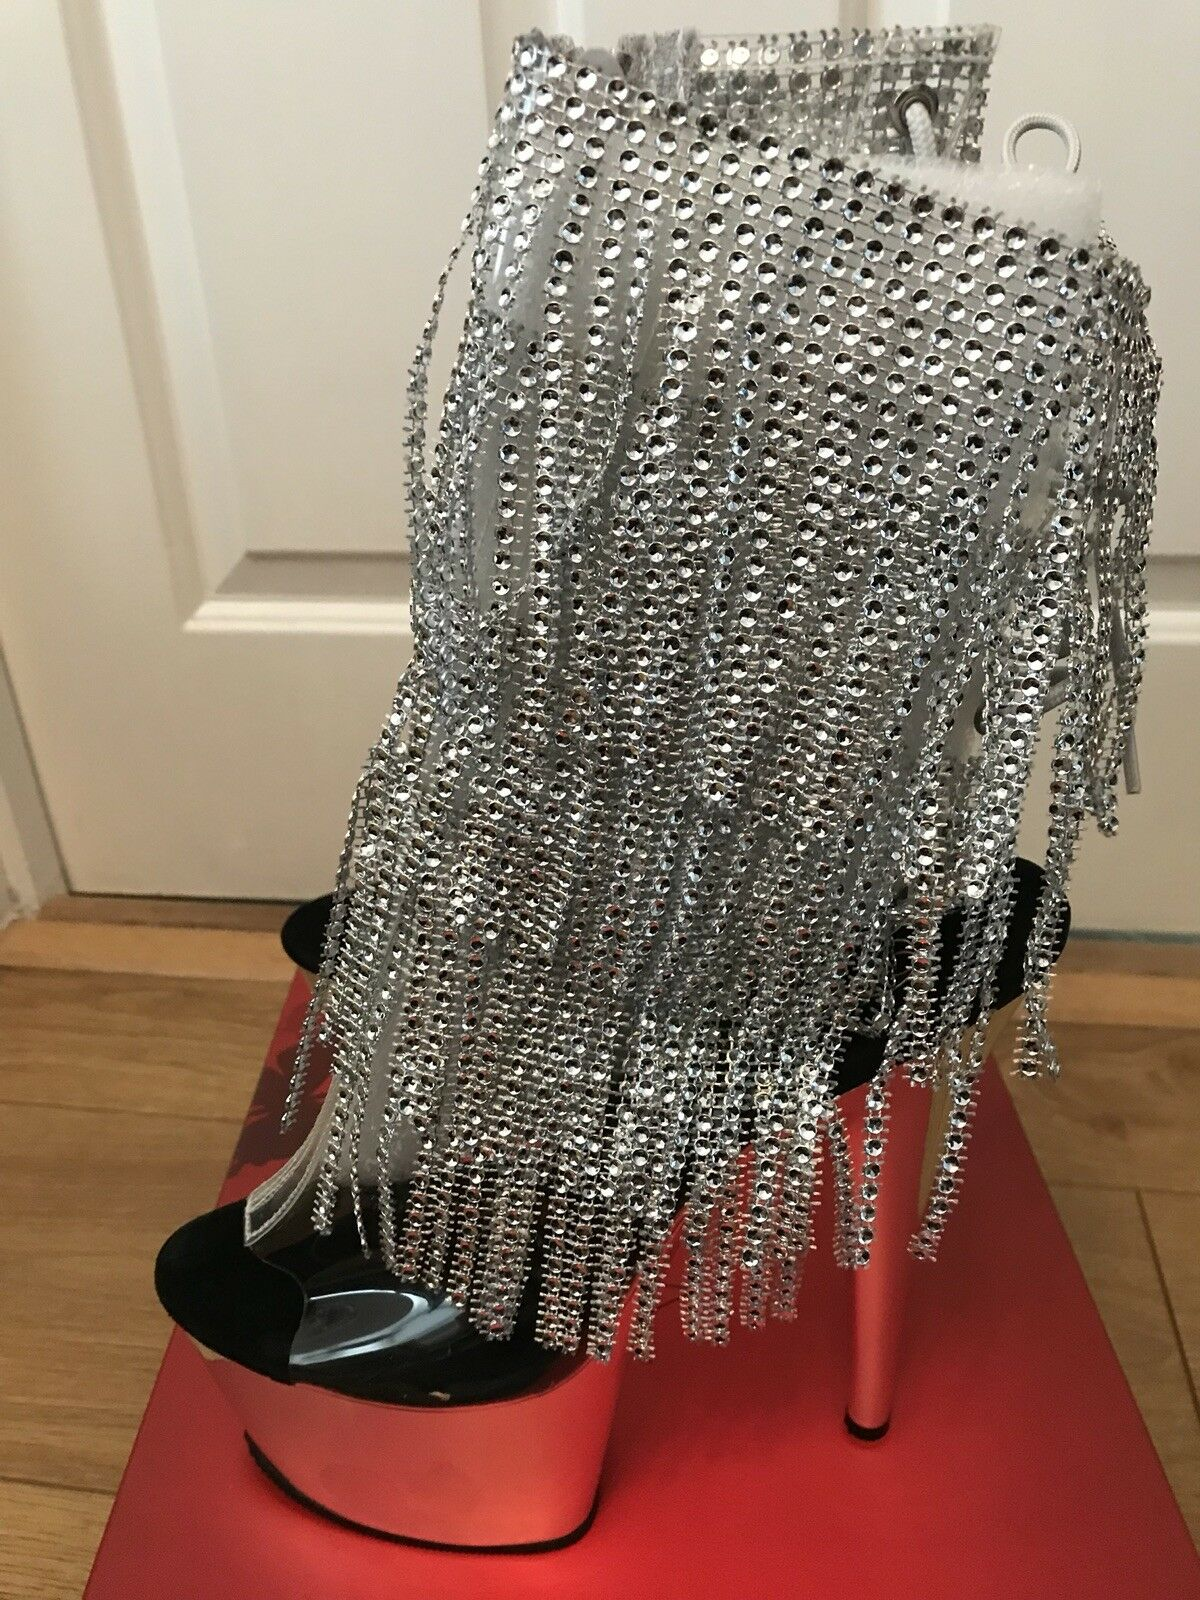 Pleaser Adore Adore Adore 1017RSF Sexy Silver Rhinestone Ankle Boots UK size 5 New in Box fb2986